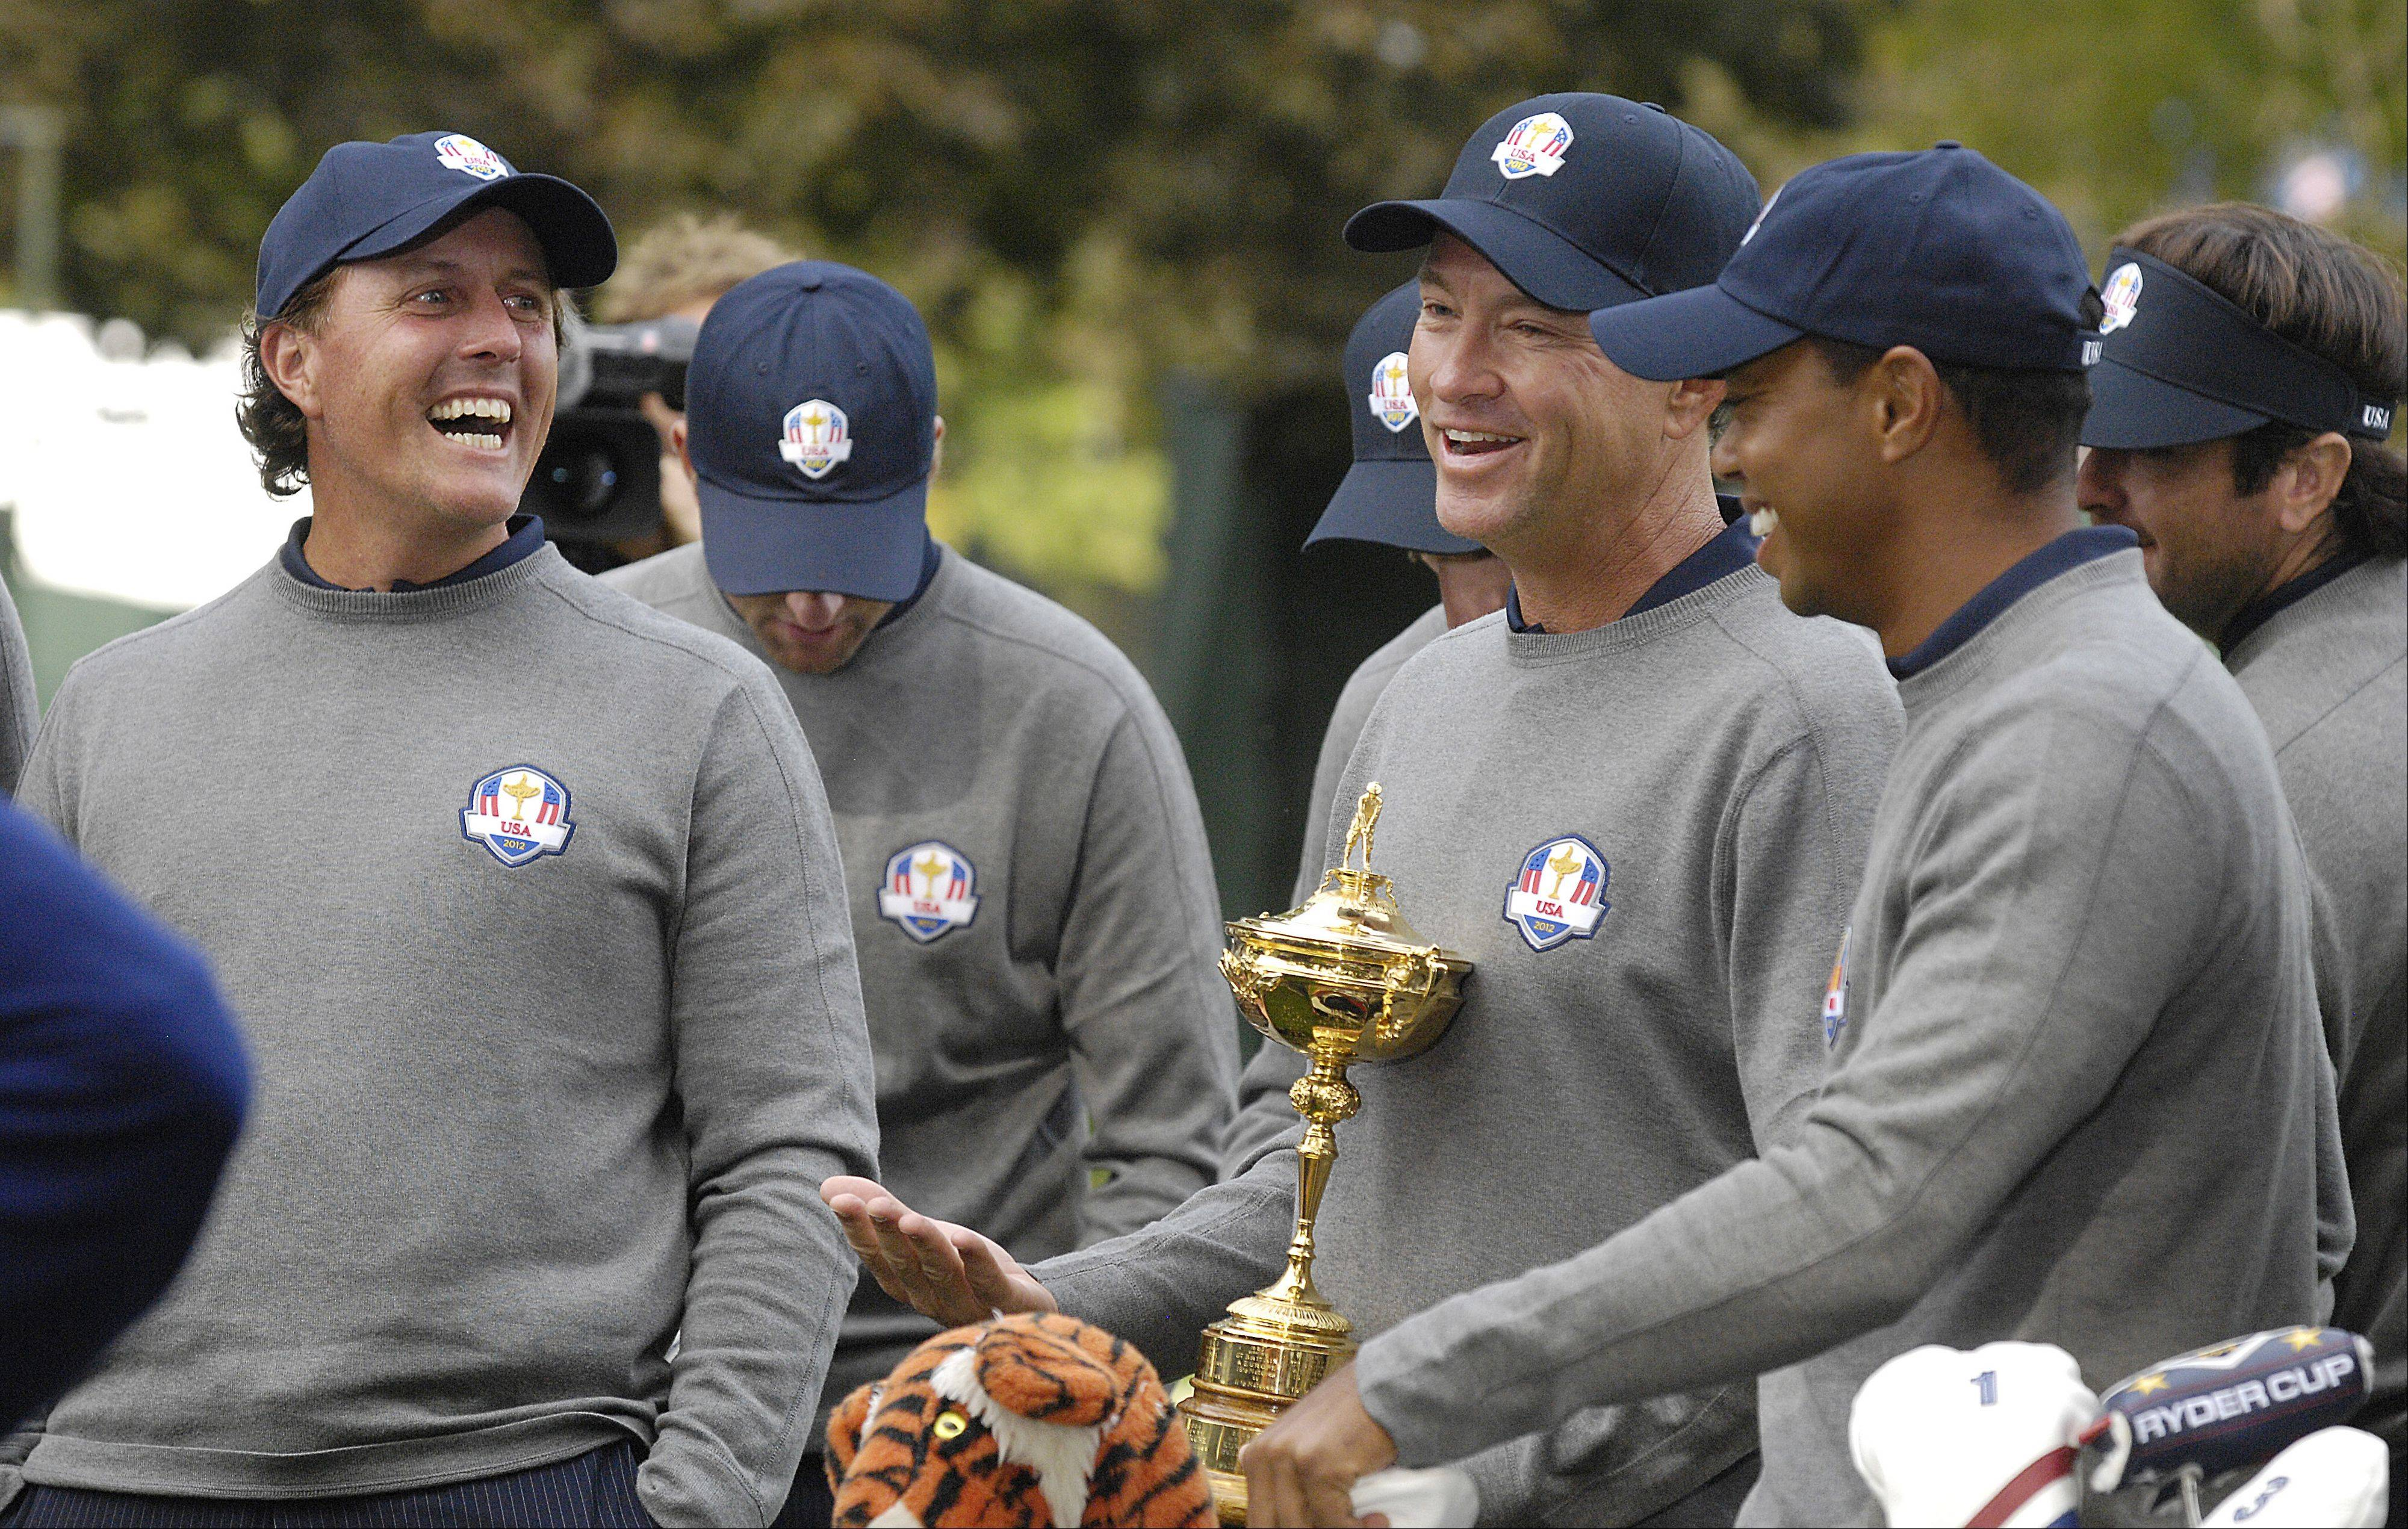 Medinah offers Team USA big Ryder Cup edge